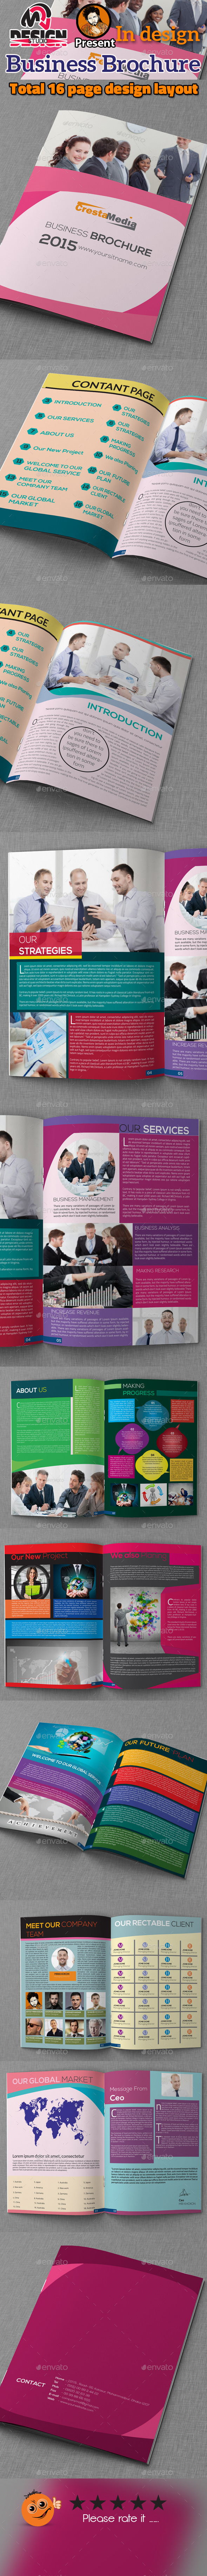 16 Page Business Brochure